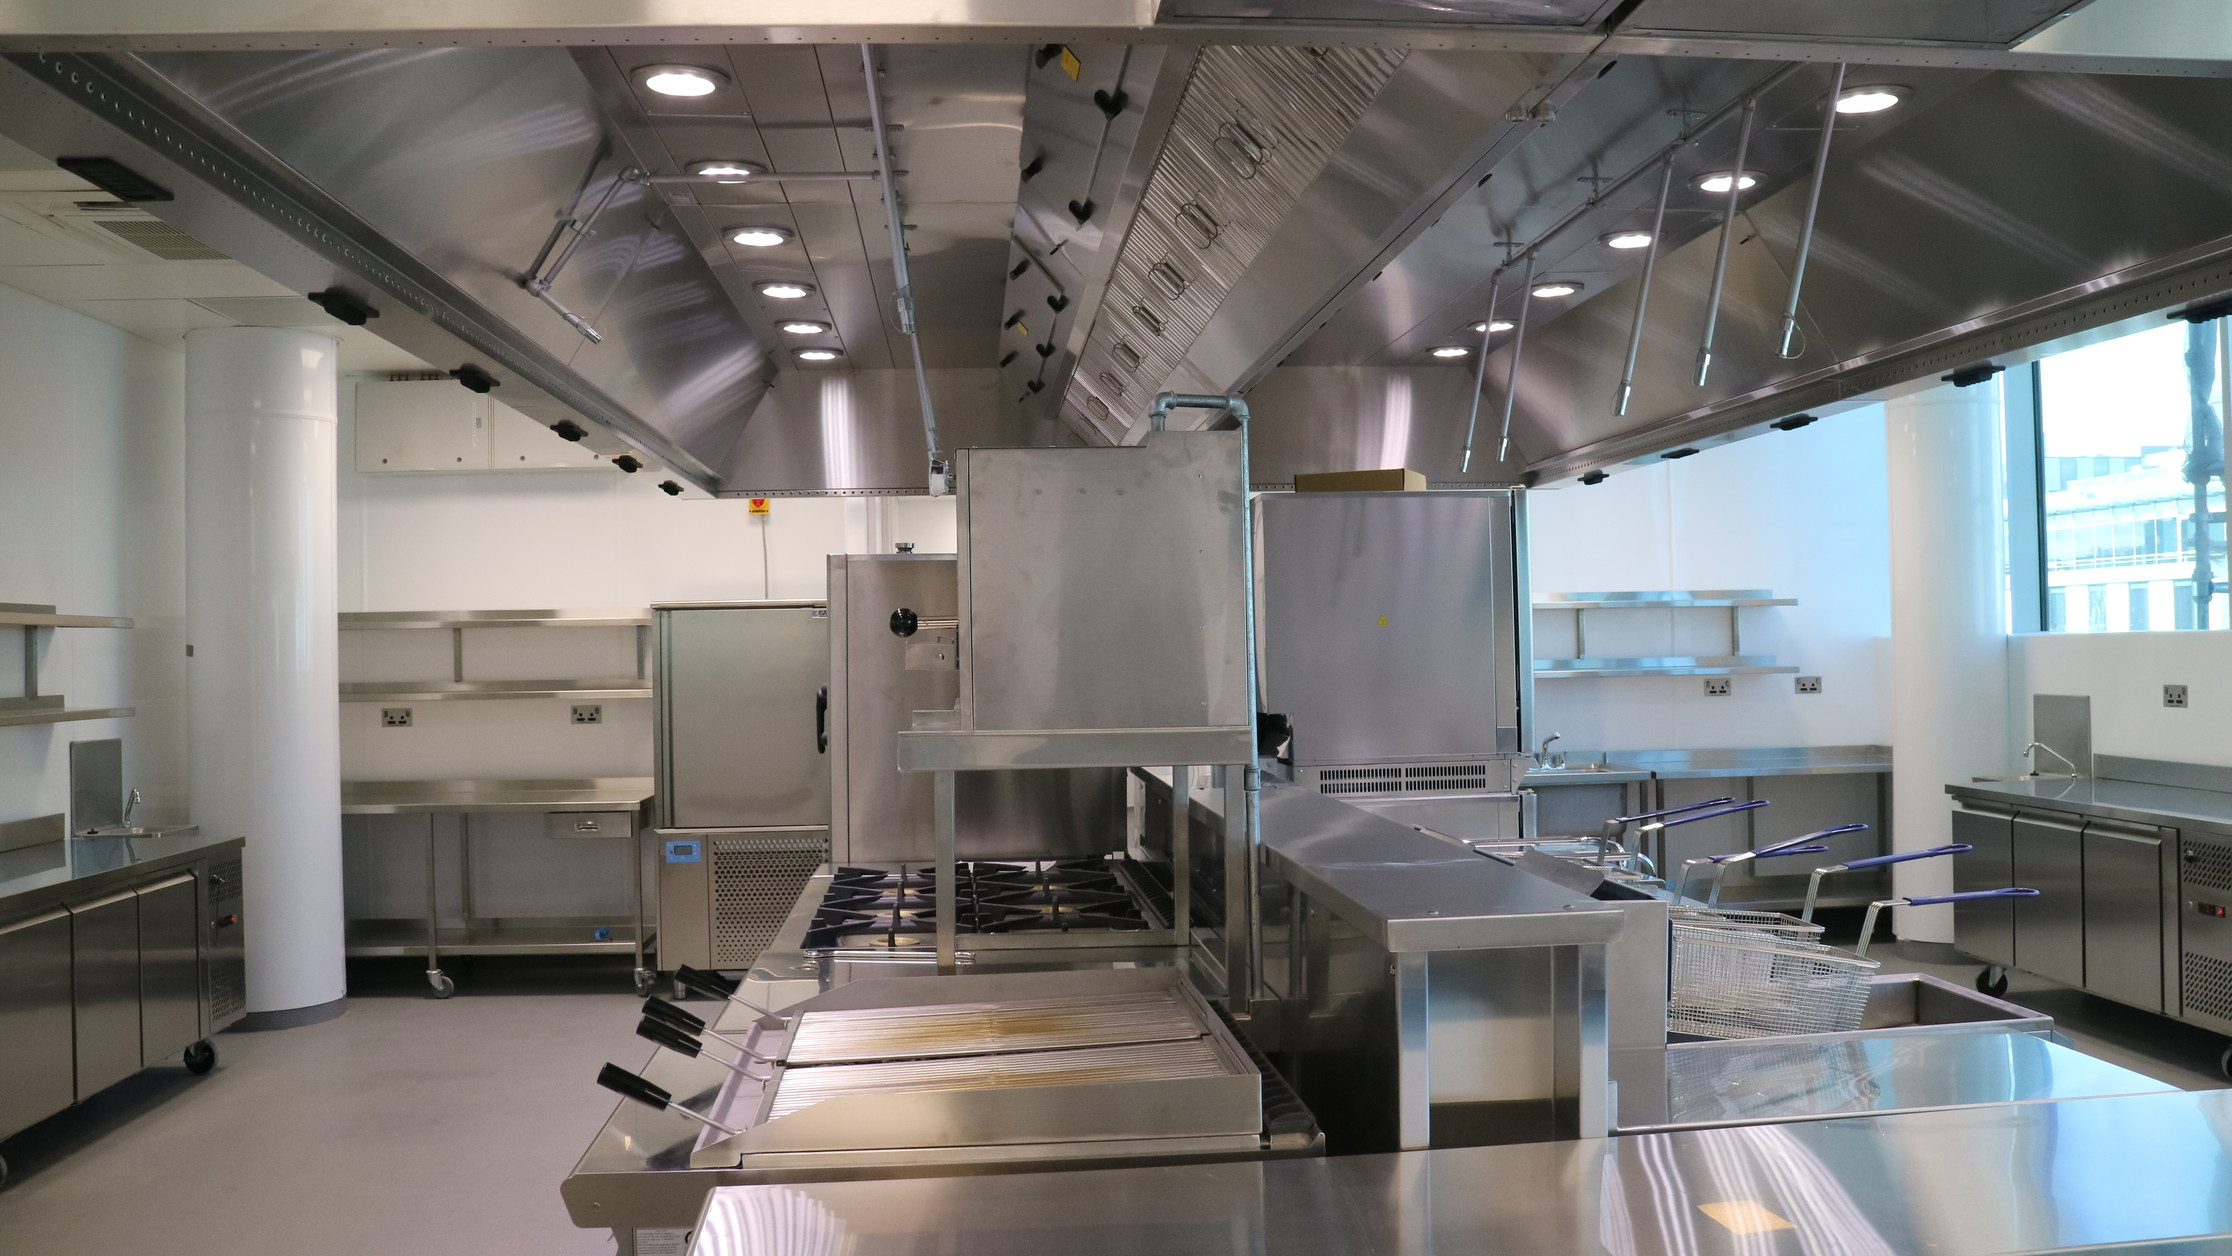 The Right Commercial Kitchen Canopy System Entropic Limited